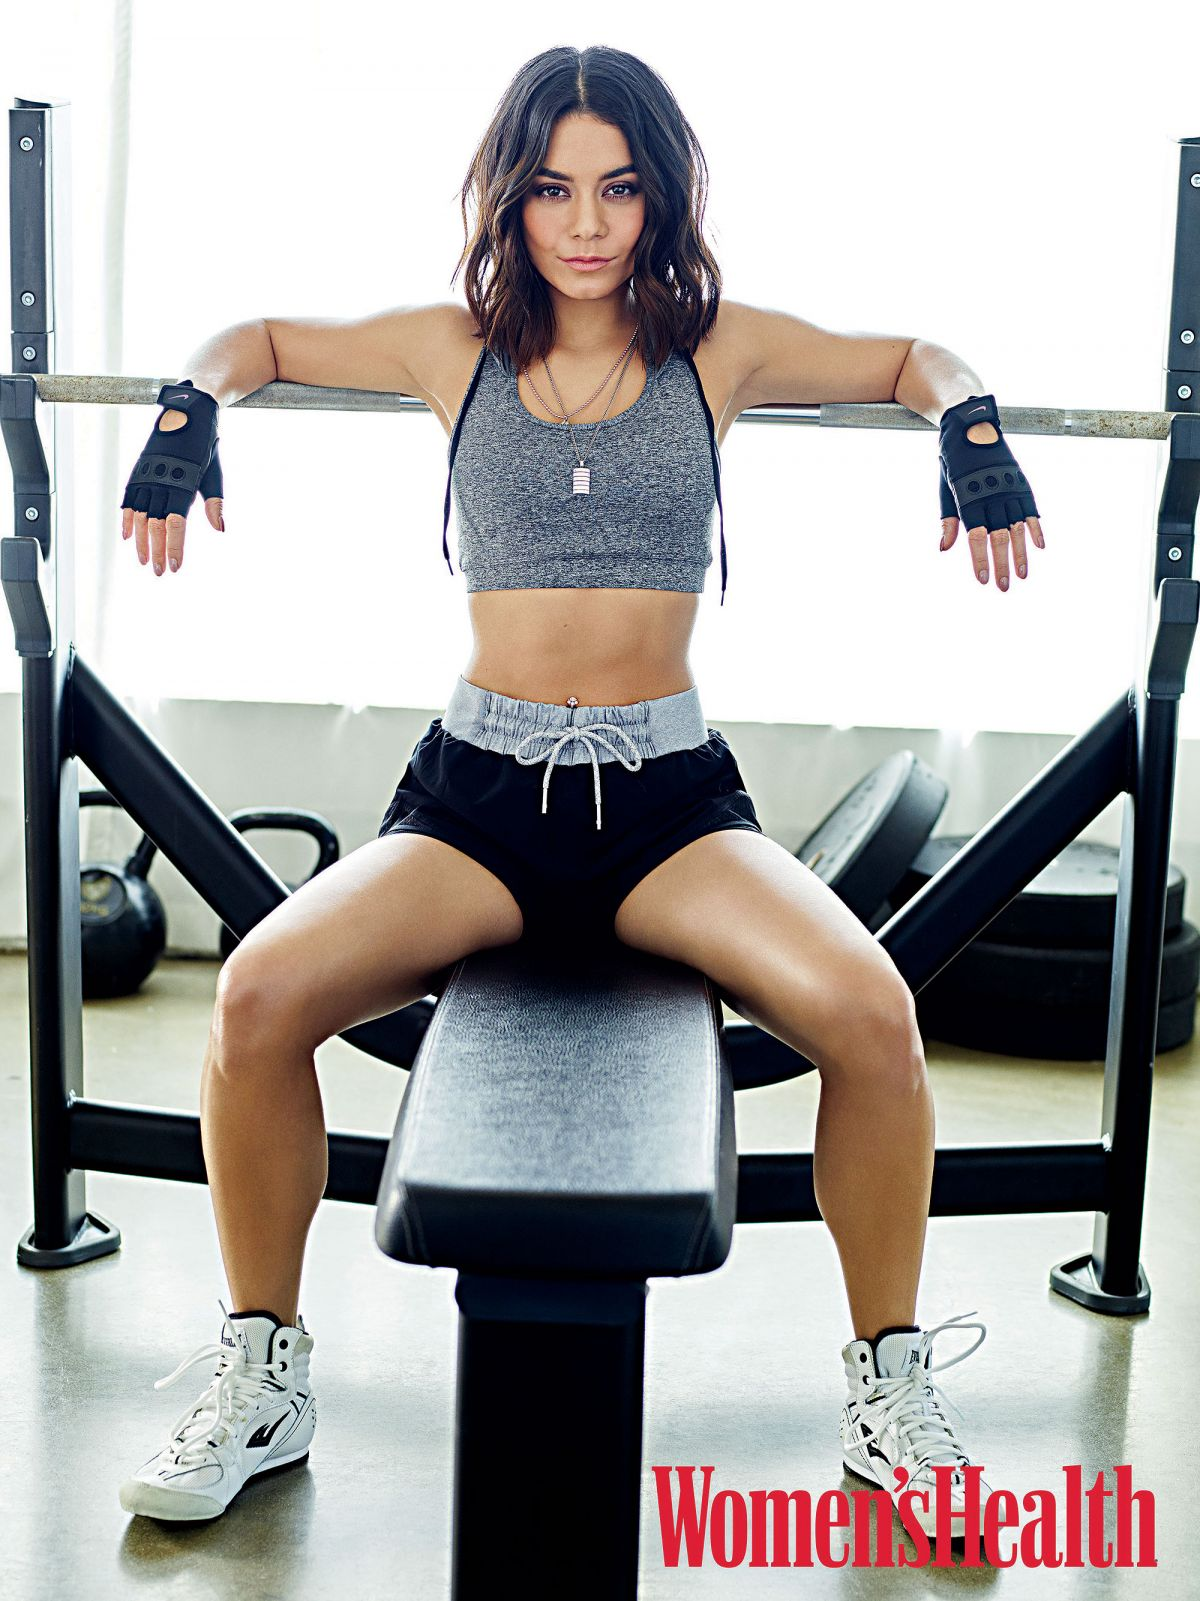 VANESSA HUDGENS in Women's Health Magazine, May 2017 Issue ...